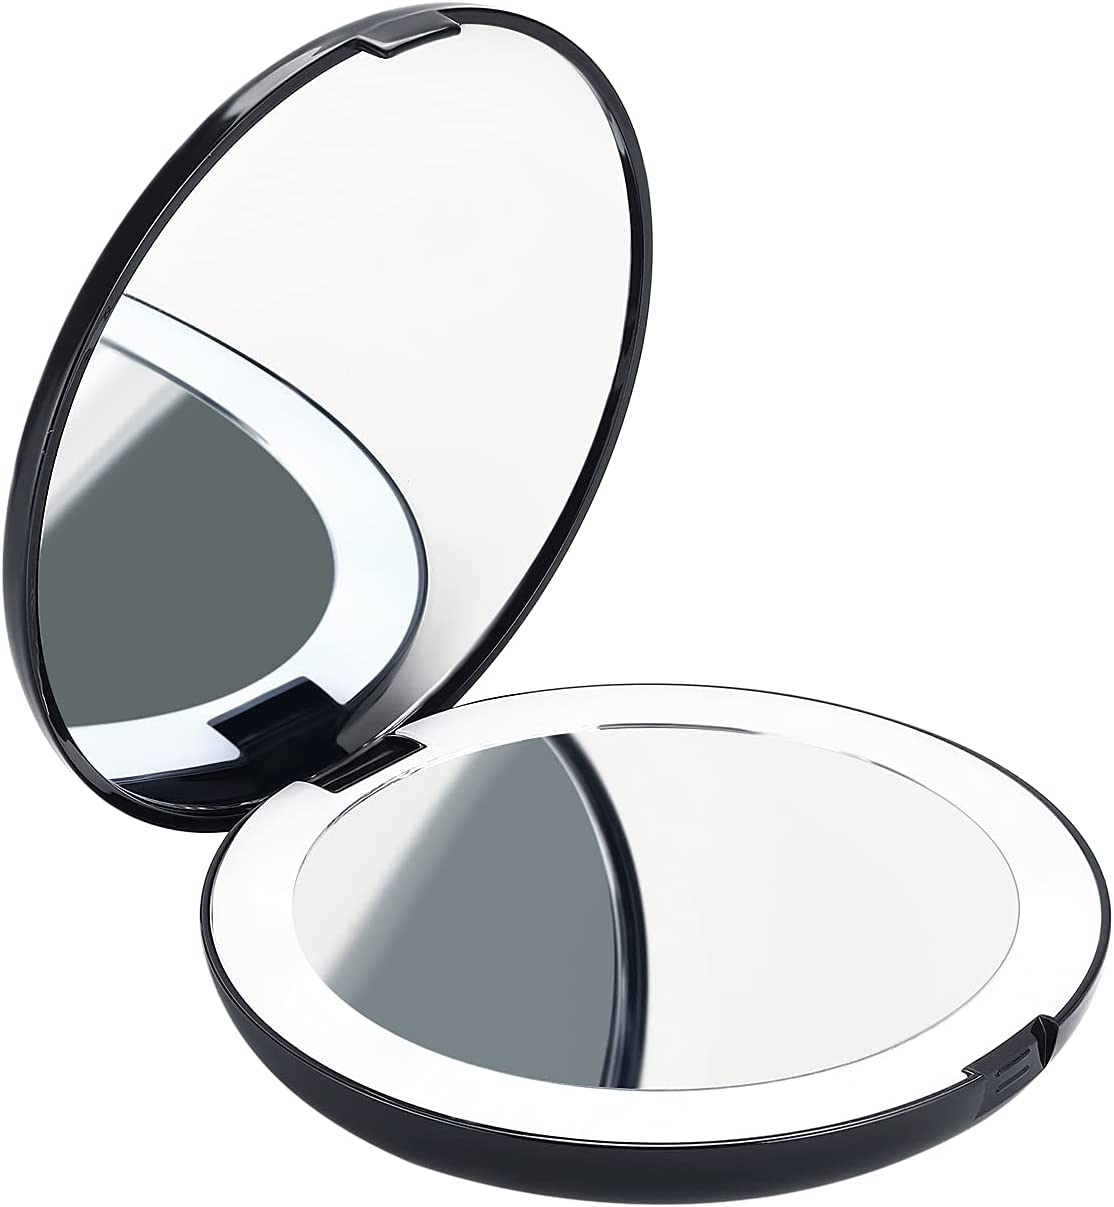 LED Lighted Travel Makeup Mirror Folding 1X 2X Magnification Max 78% Dealing full price reduction OFF